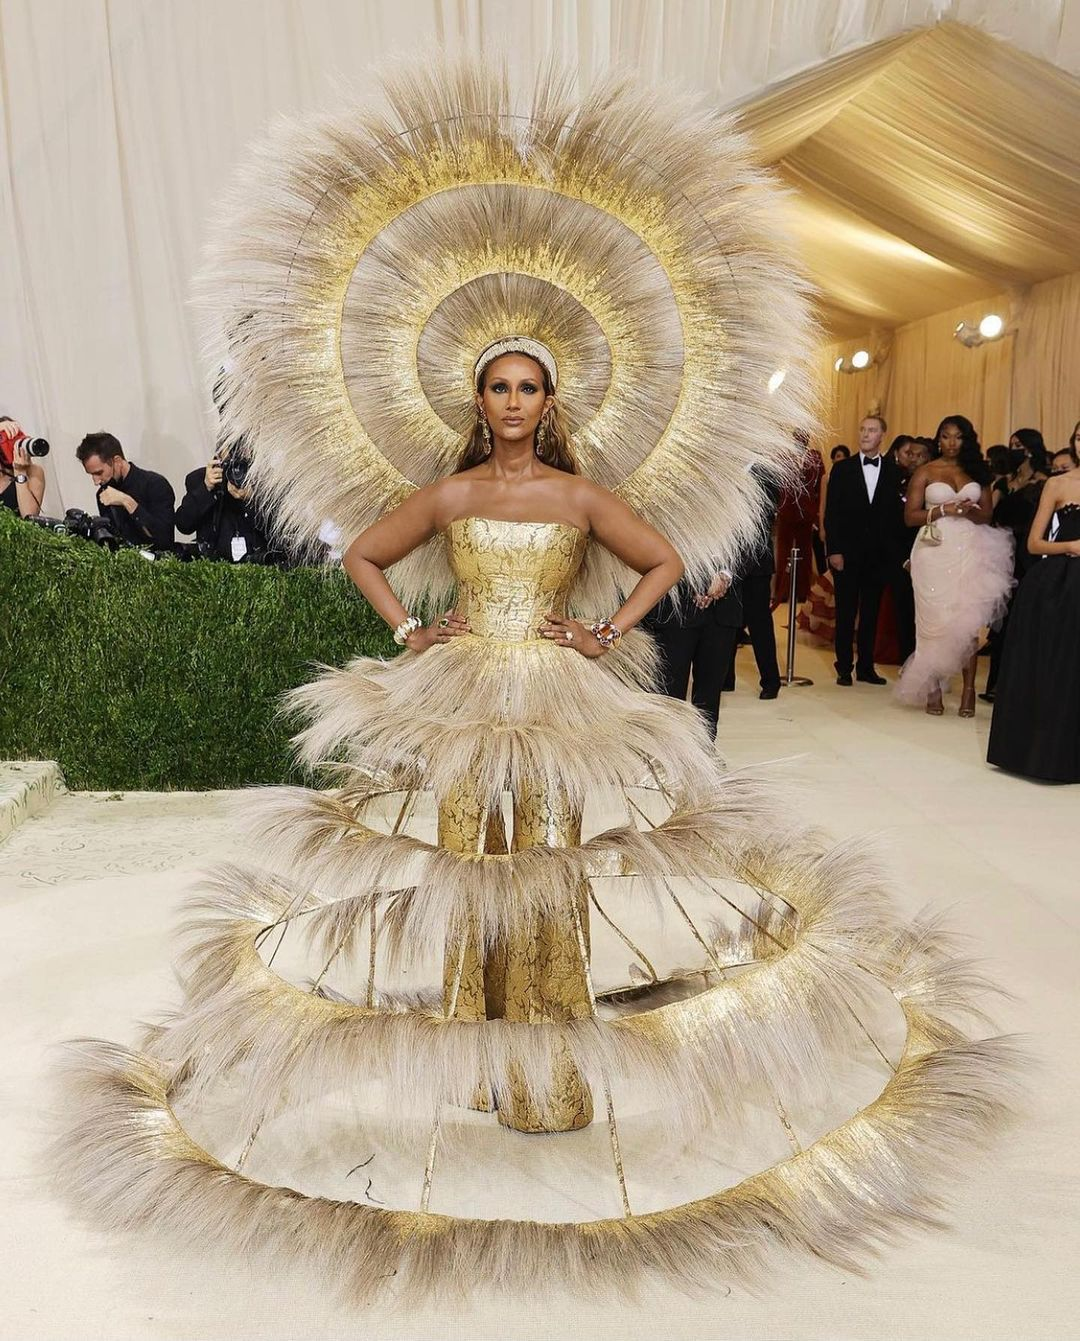 met gala 2021 most jaw-dropping looks